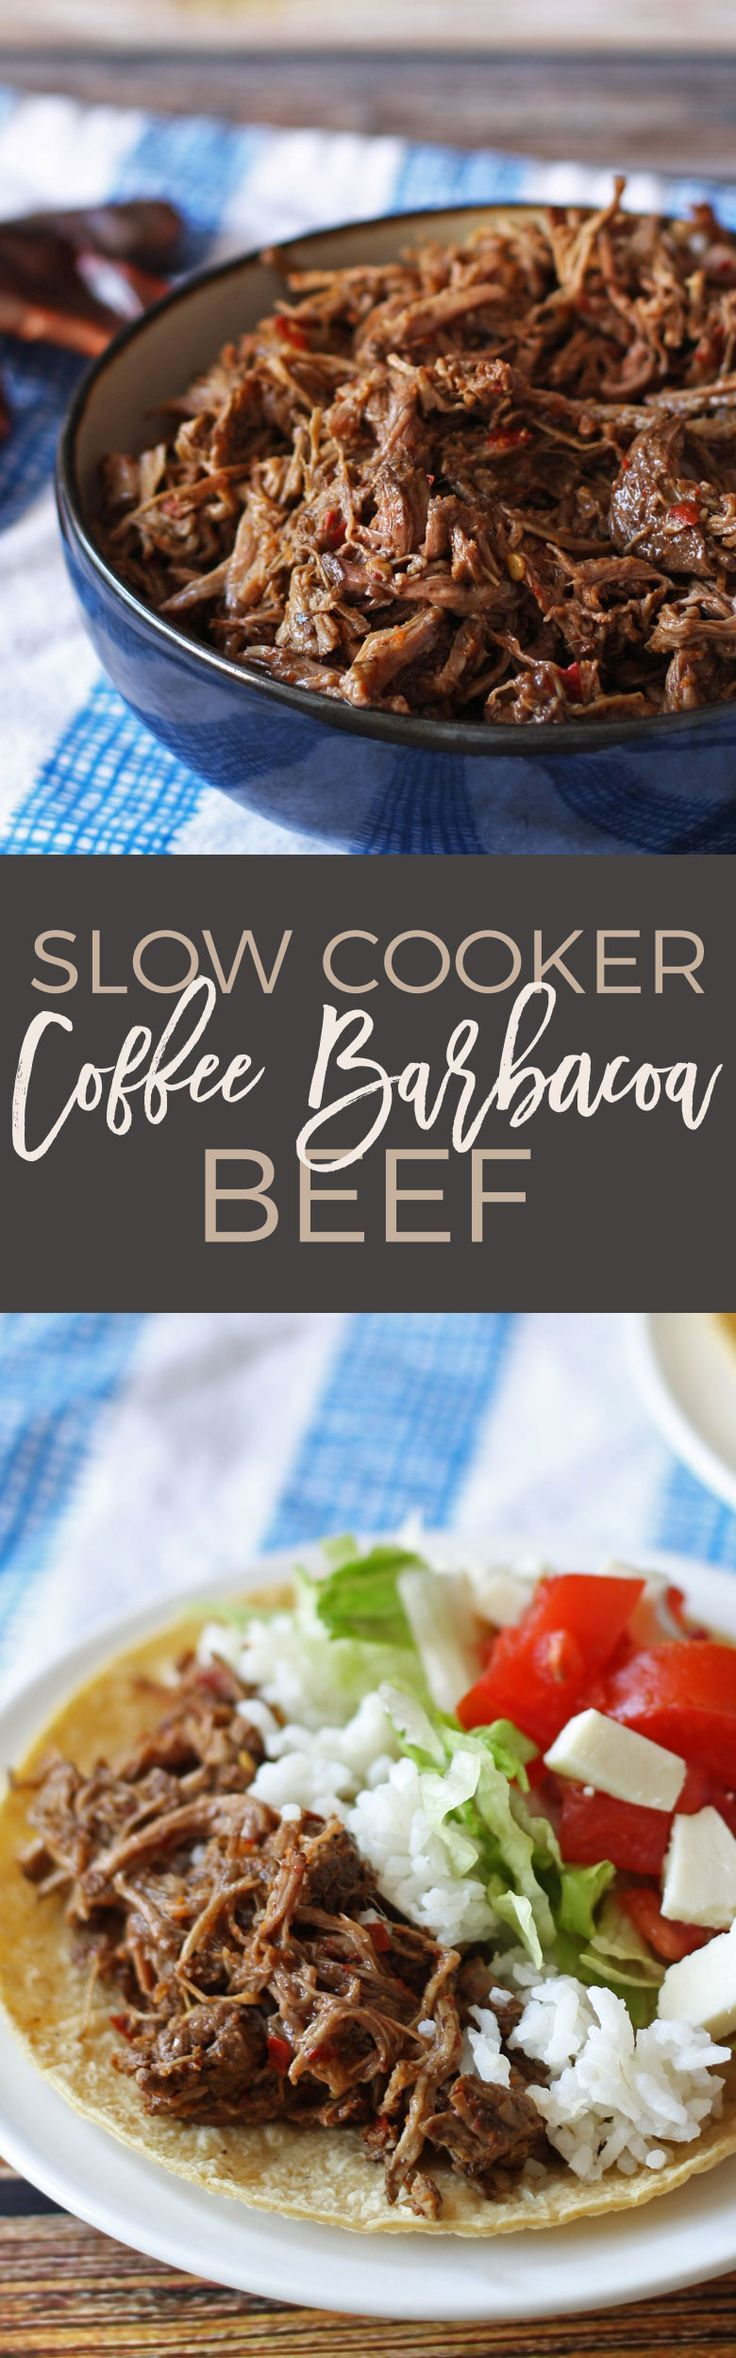 Make this slow cooker coffee barbacoa beef the next time you are in the mood for tacos, burritos or quesadillas! If you're looking for game day recipes, this is the perfect dinner! | http://honeyandbirch.com | slow cooker | crockpot | beef | barbacoa | chipotle | mexicana | authentic | tacos | recipe | recipes | tacos | burritos | bowl | how to make barbacoa | enchiladas | paleo | tailgating | super bowl | football